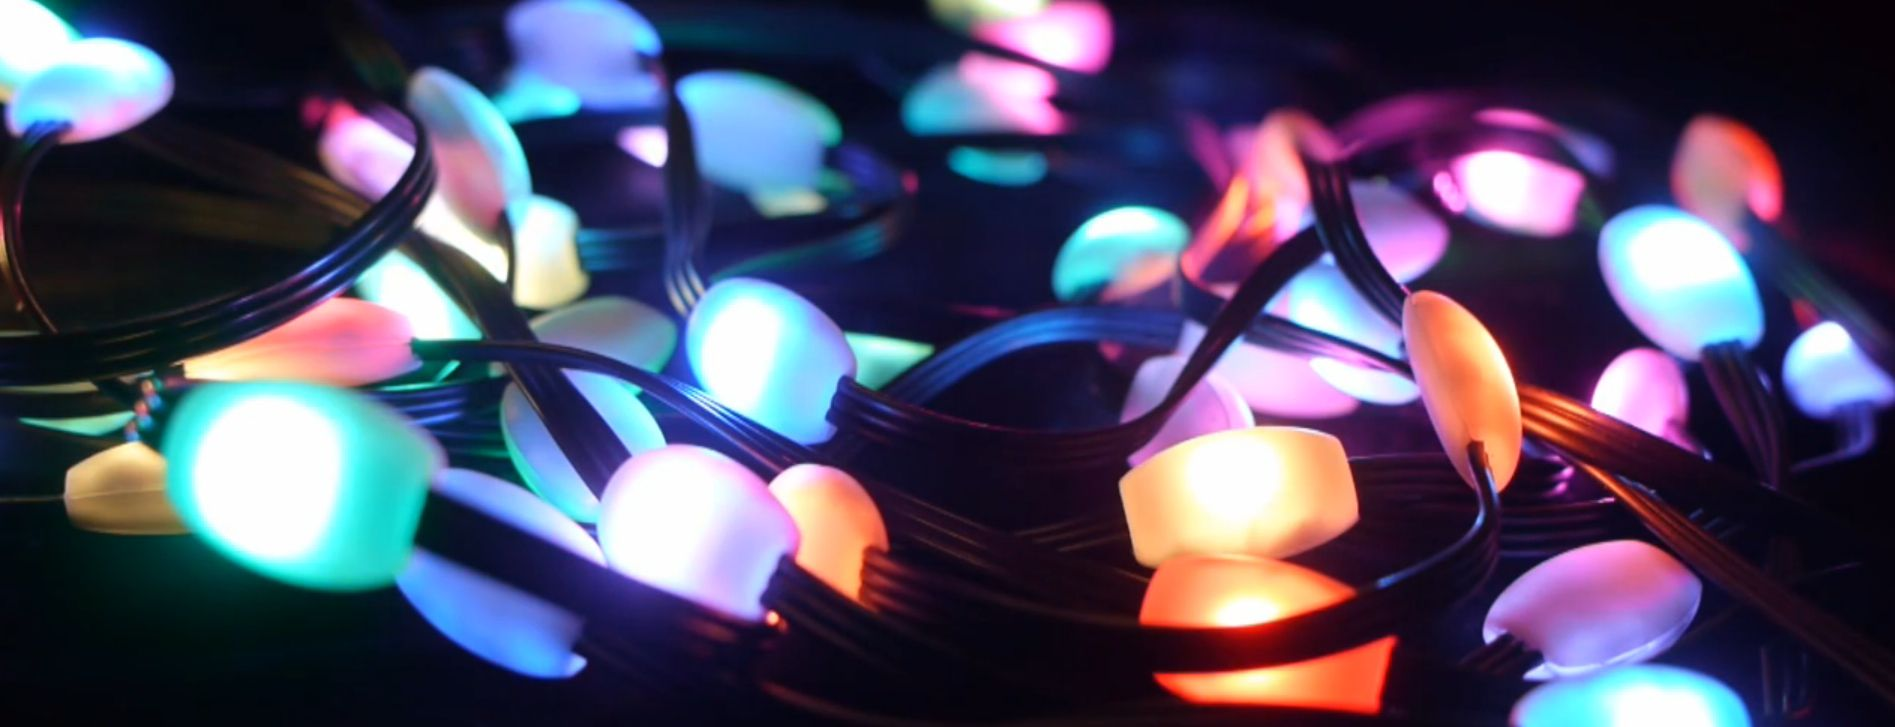 the holiday smart christmas lights from moorescloud take their cue from the likes of the philips hue lightbulb